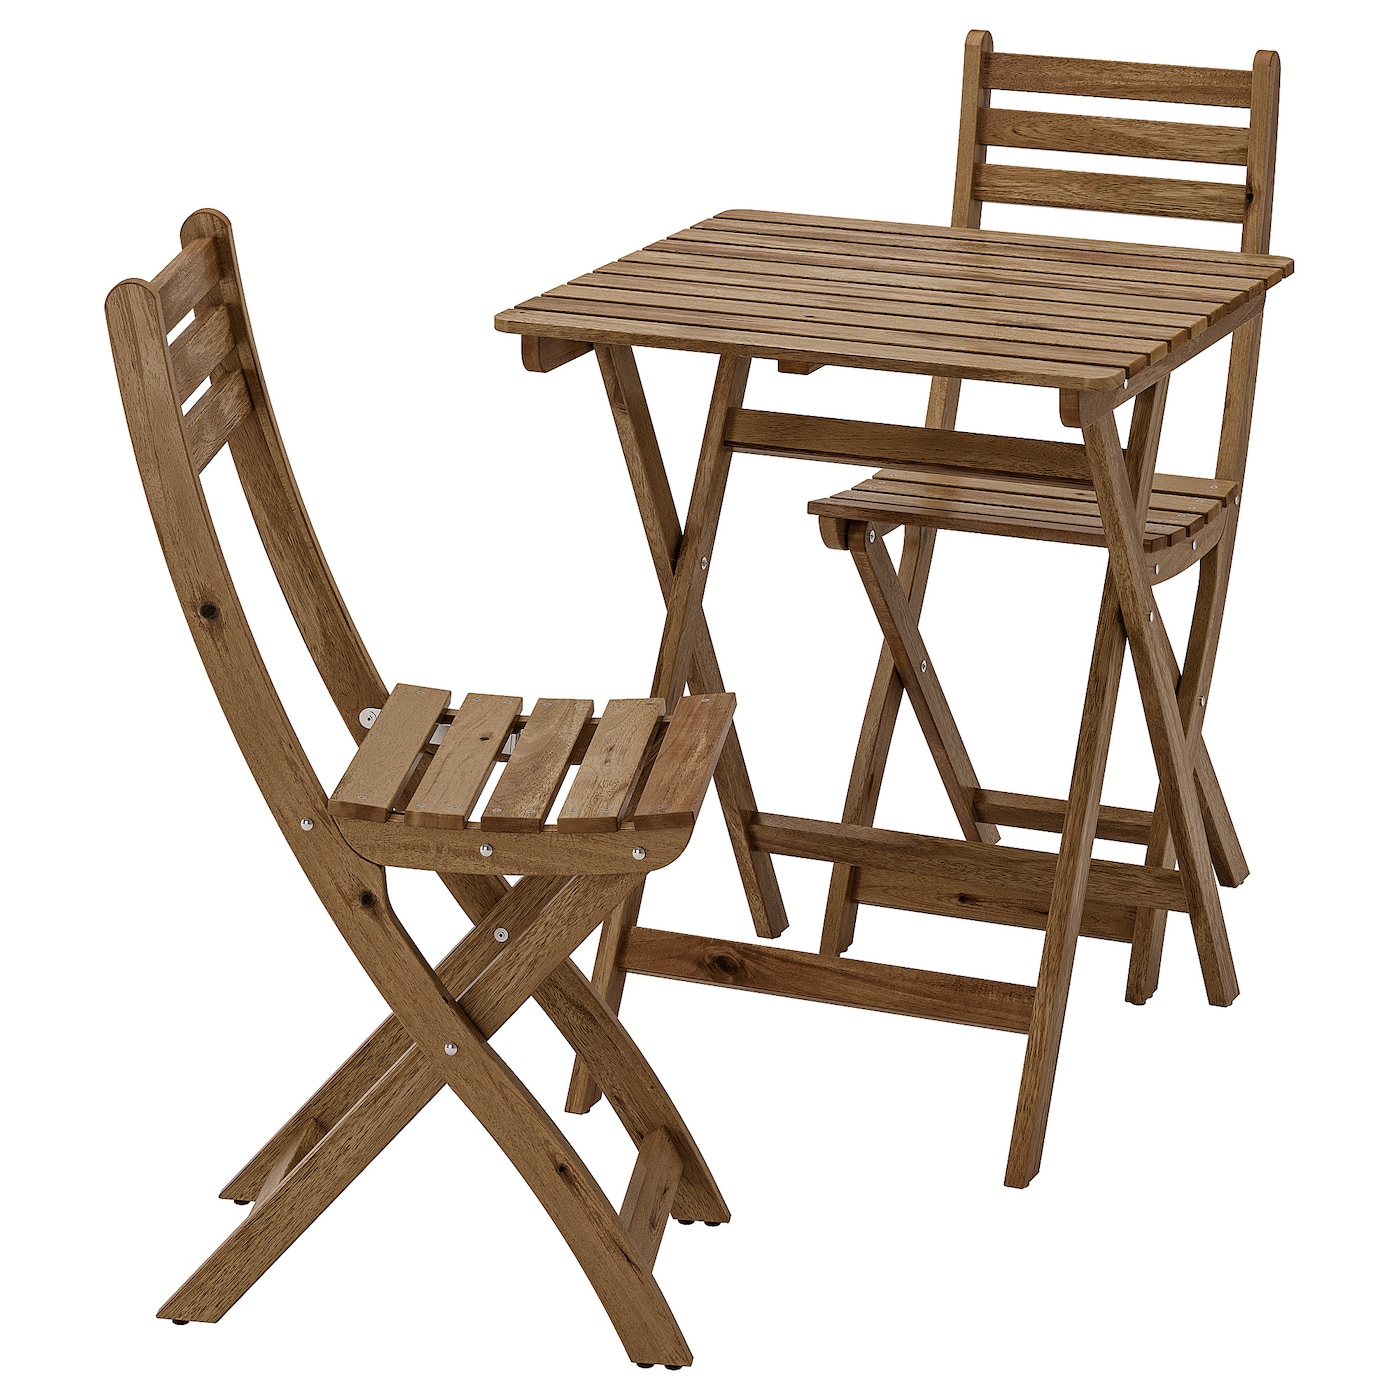 ASKHOLMEN Table+9 chairs, outdoor - gray-brown stained